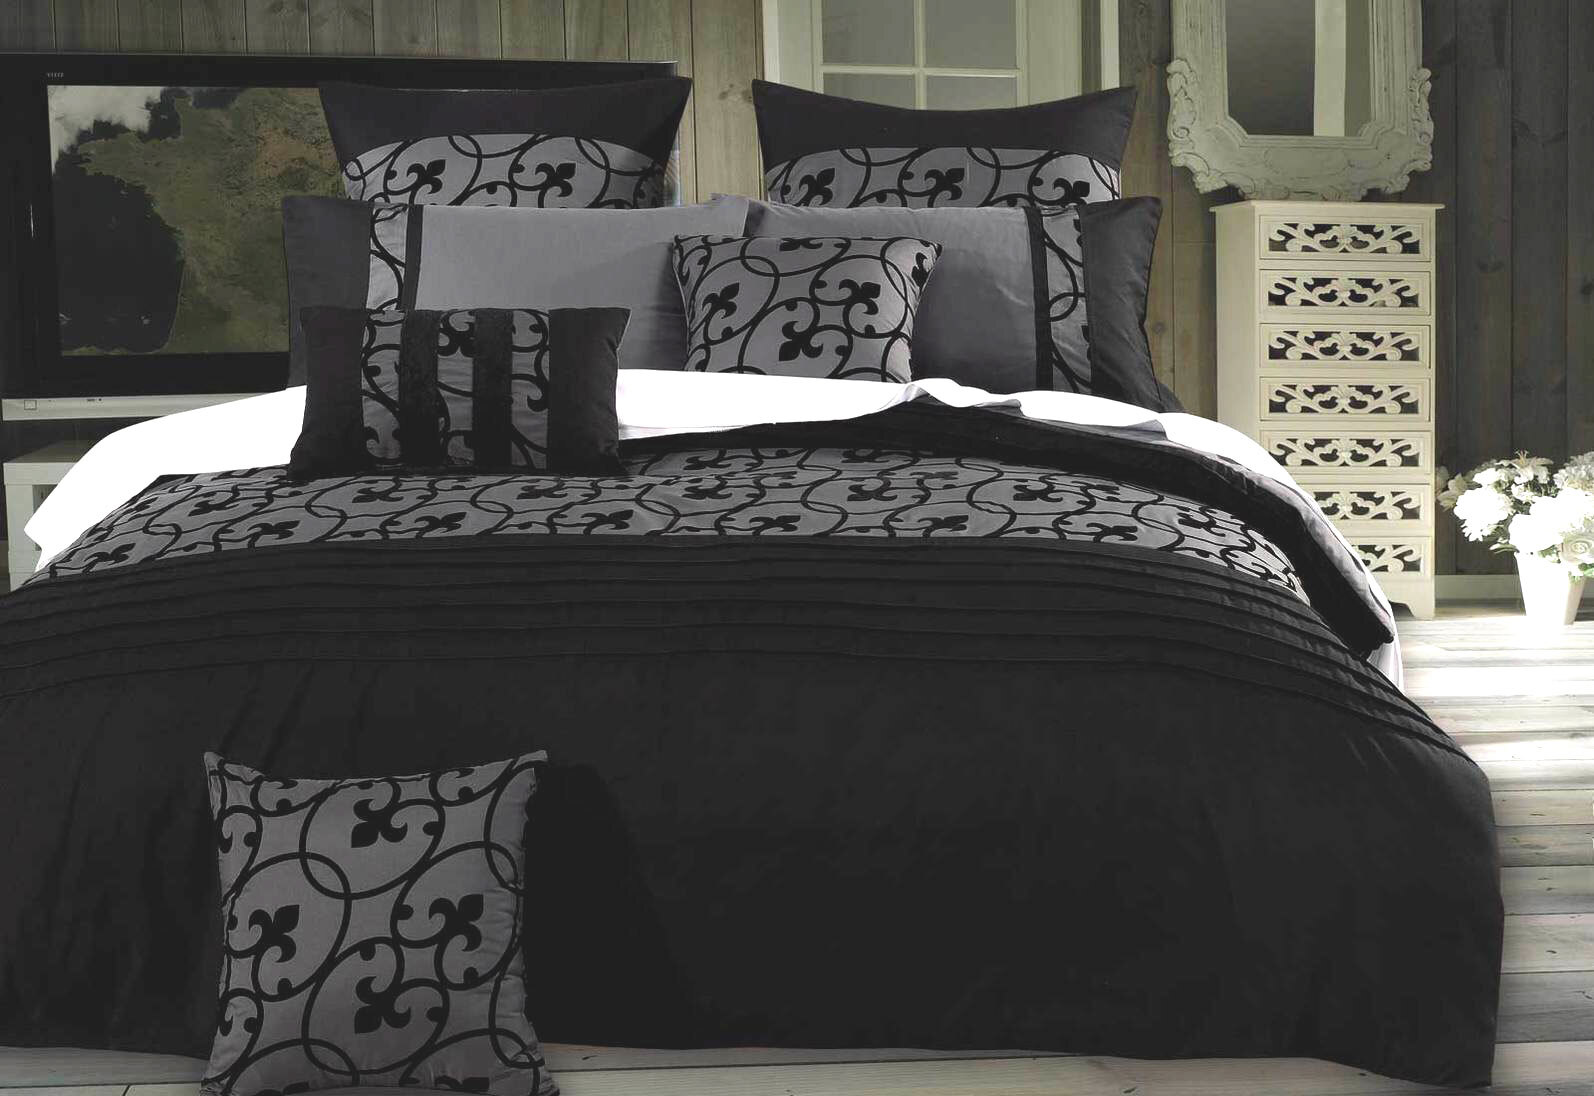 Lyde Charcoal Grey Duvet Cover Set Black Flocking Design